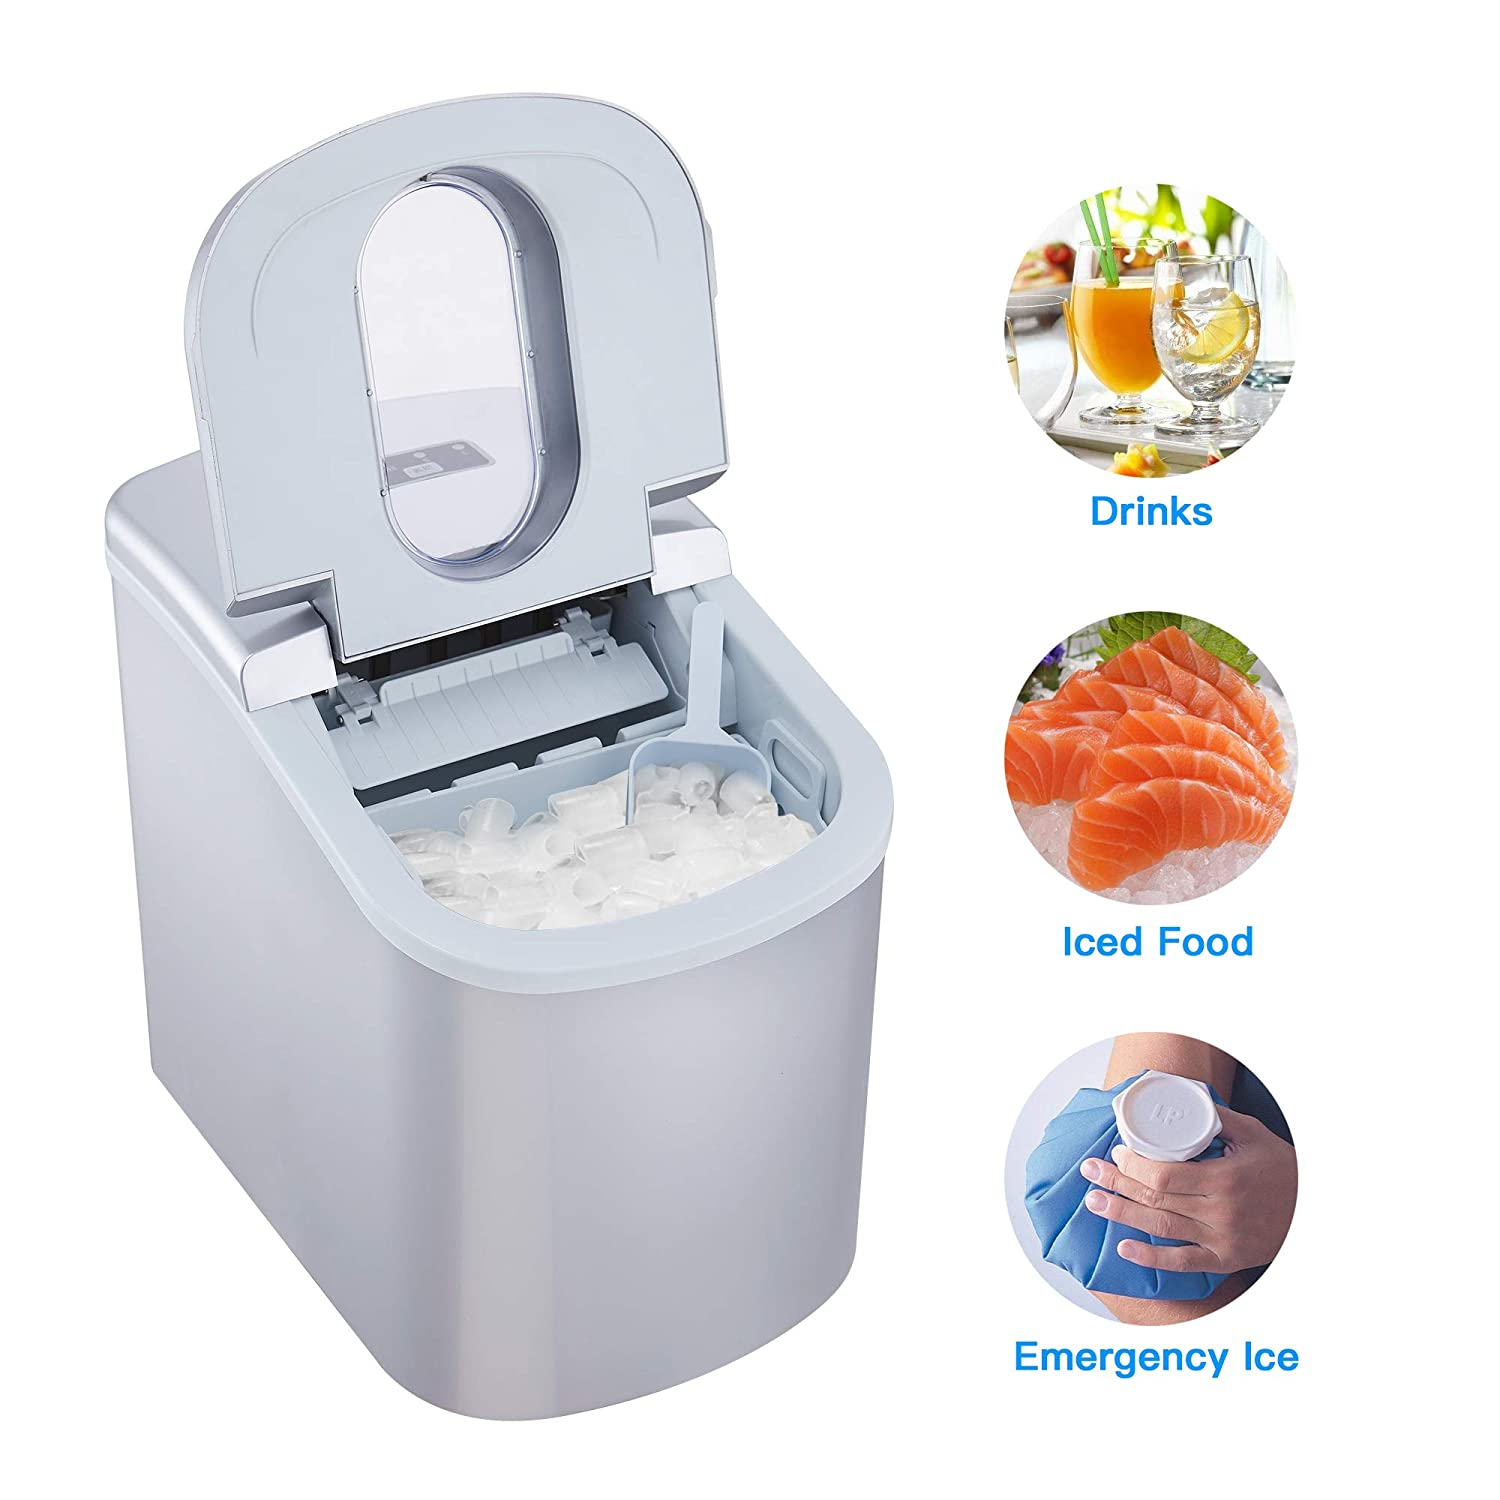 2 Size Options Shaped Ice ready in 8 Minutes 12Kg SILVER Capacity 26Lbs High Efficiency Icemaker Per Day HODIAX Portable Ice Maker Countertop Compact Ice Cube Makers Machine 2.2L 2.3QT